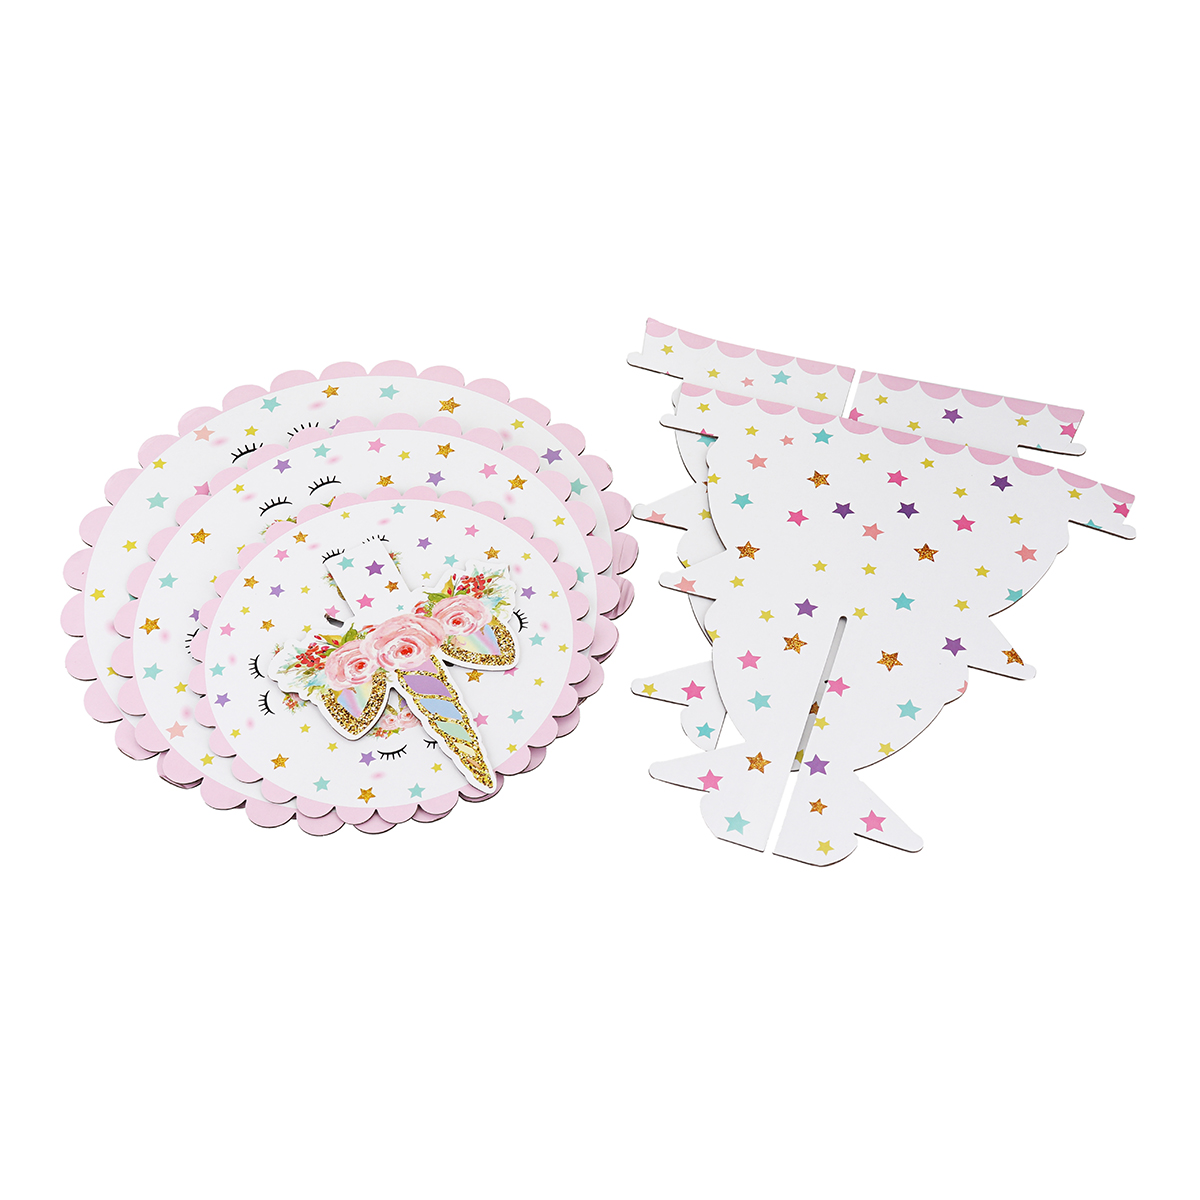 3-tier Cake Stand Unicorn Baby Shower Supplie Kids Birthday Party Decorations